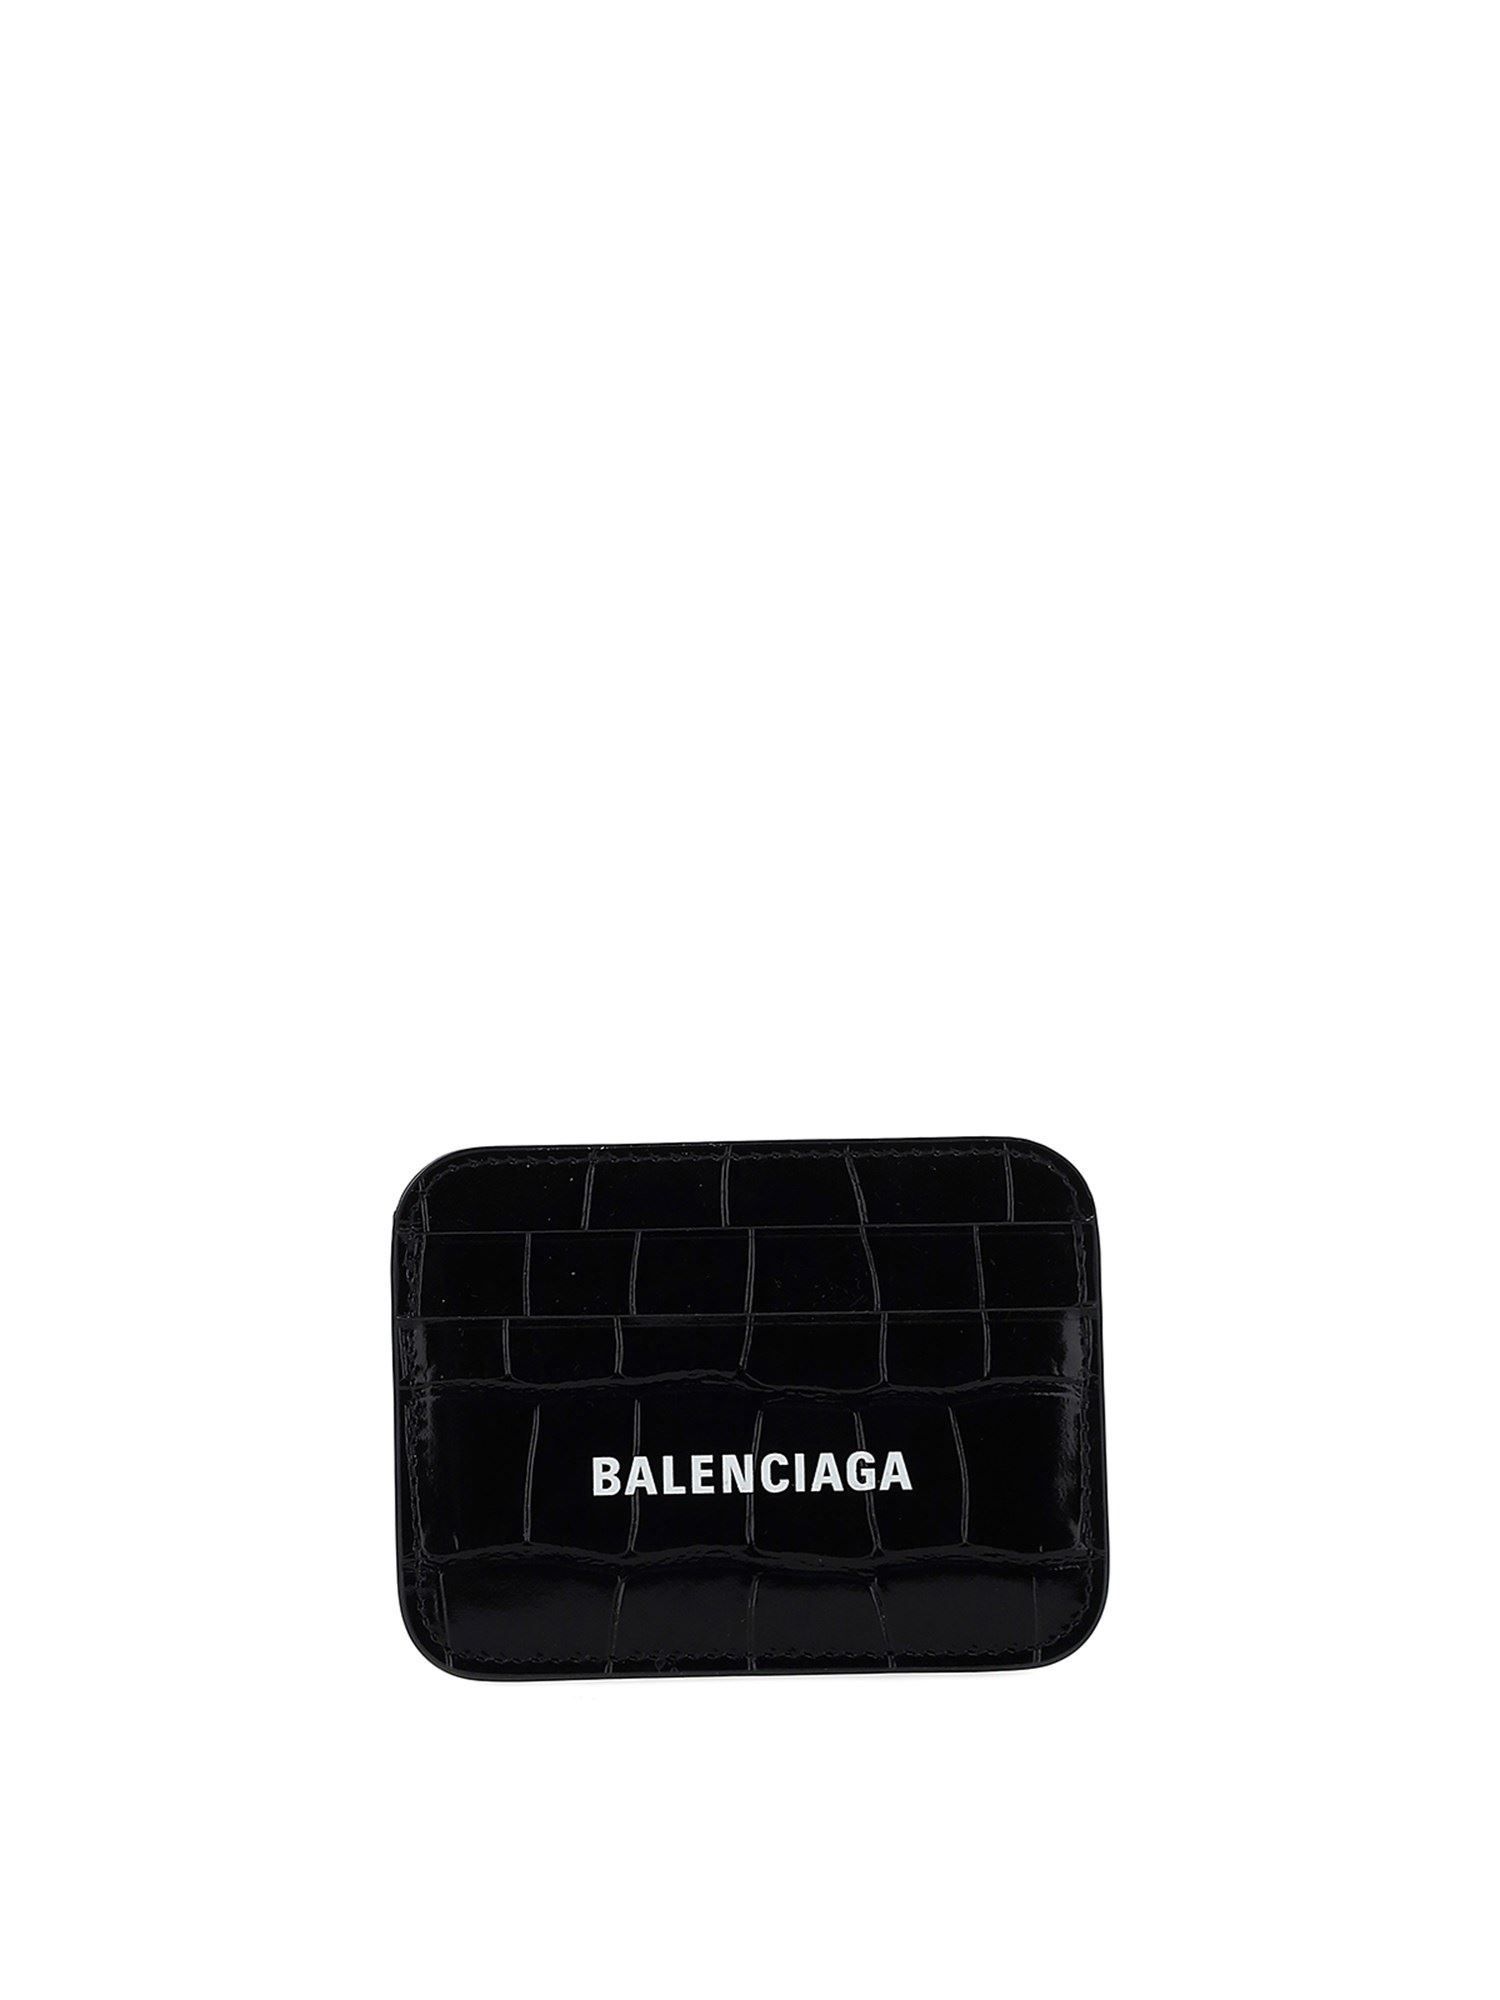 Balenciaga CROCO PRINT CARD HOLDER IN BLACK